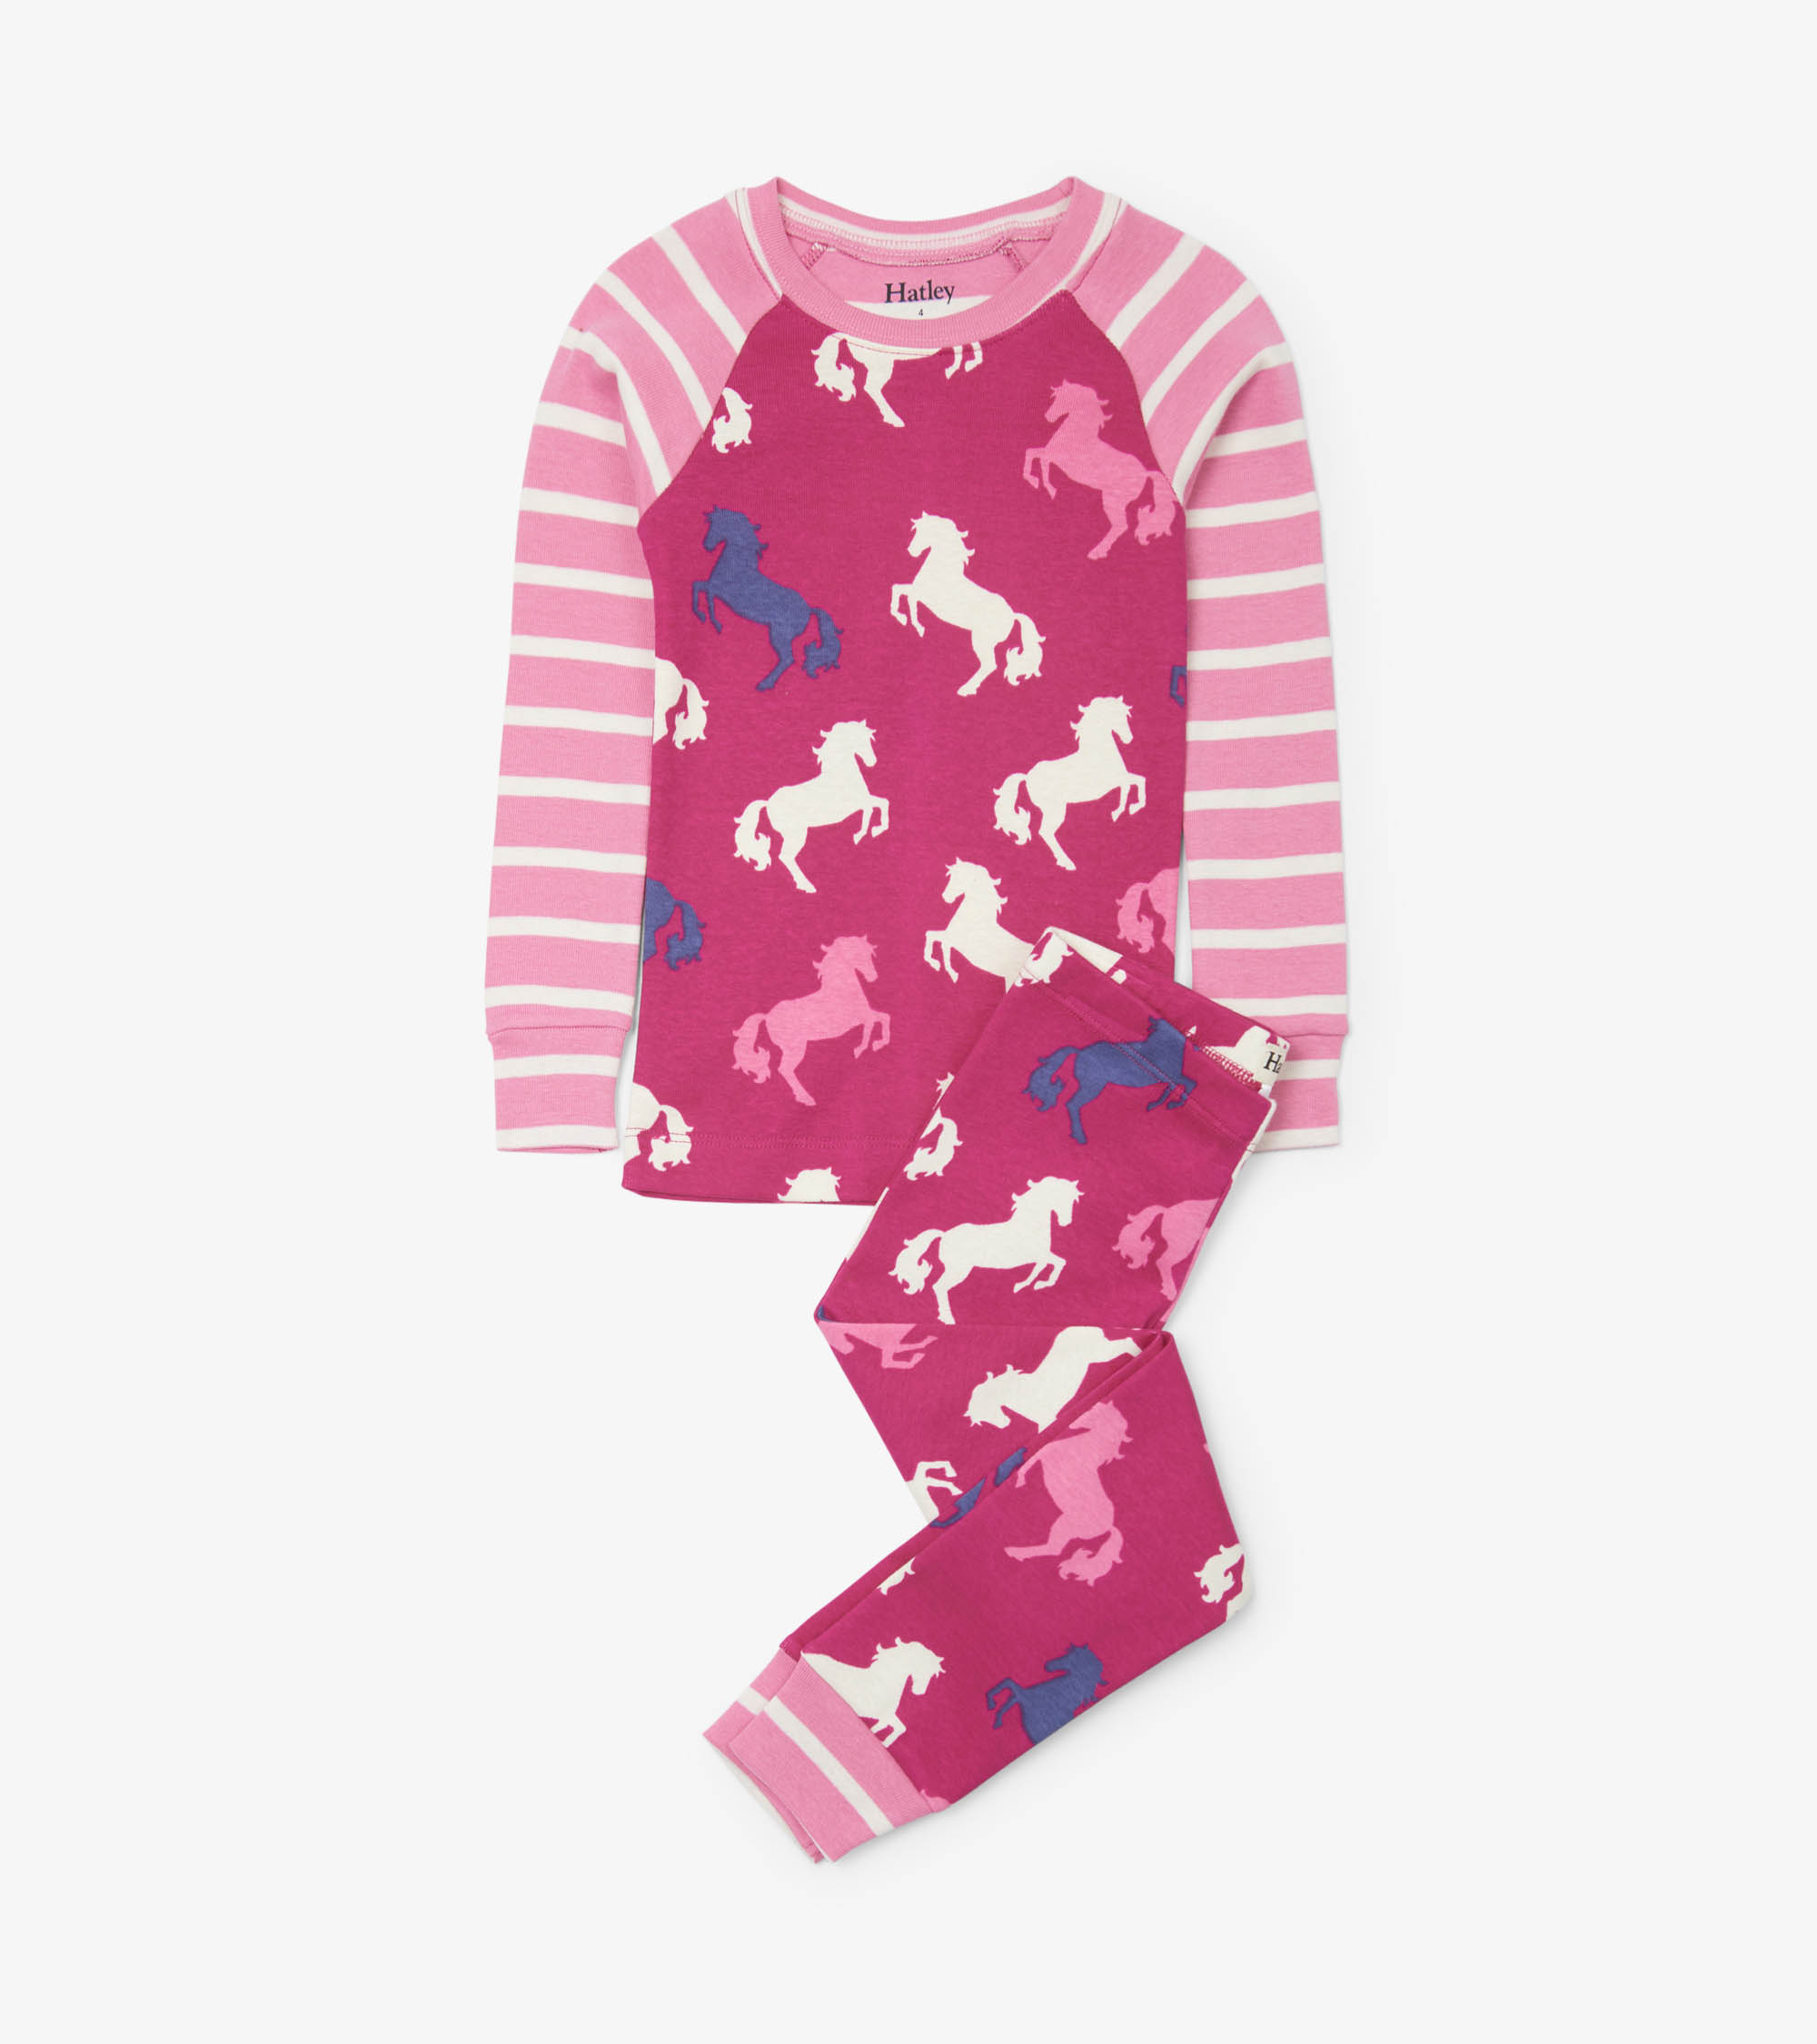 Hatley Playful Horses Organic Cotton Raglan Pyjama Set